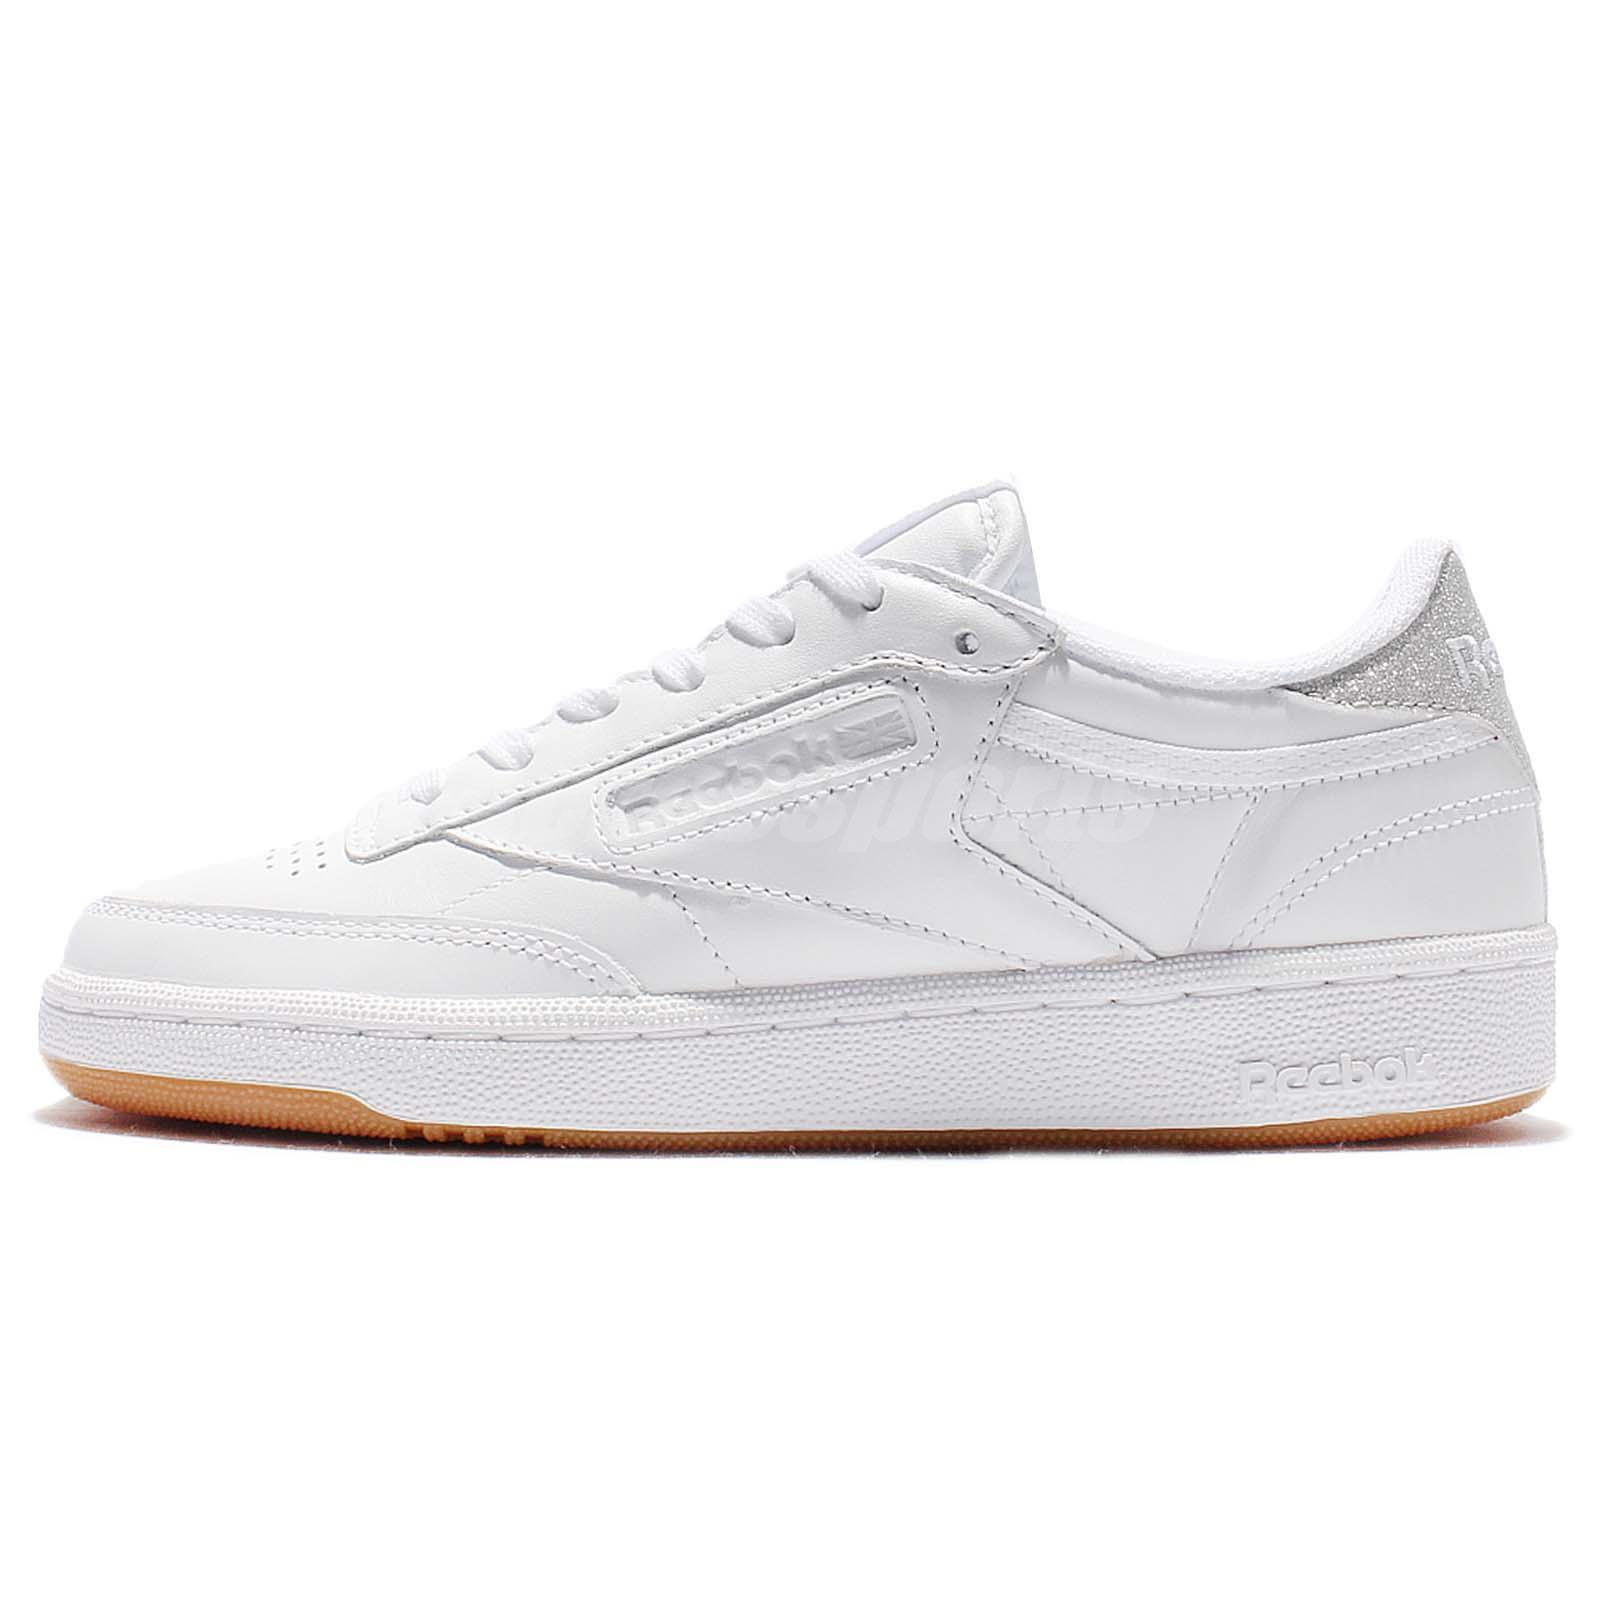 reebok club c 85 diamond leather white gum women classic. Black Bedroom Furniture Sets. Home Design Ideas